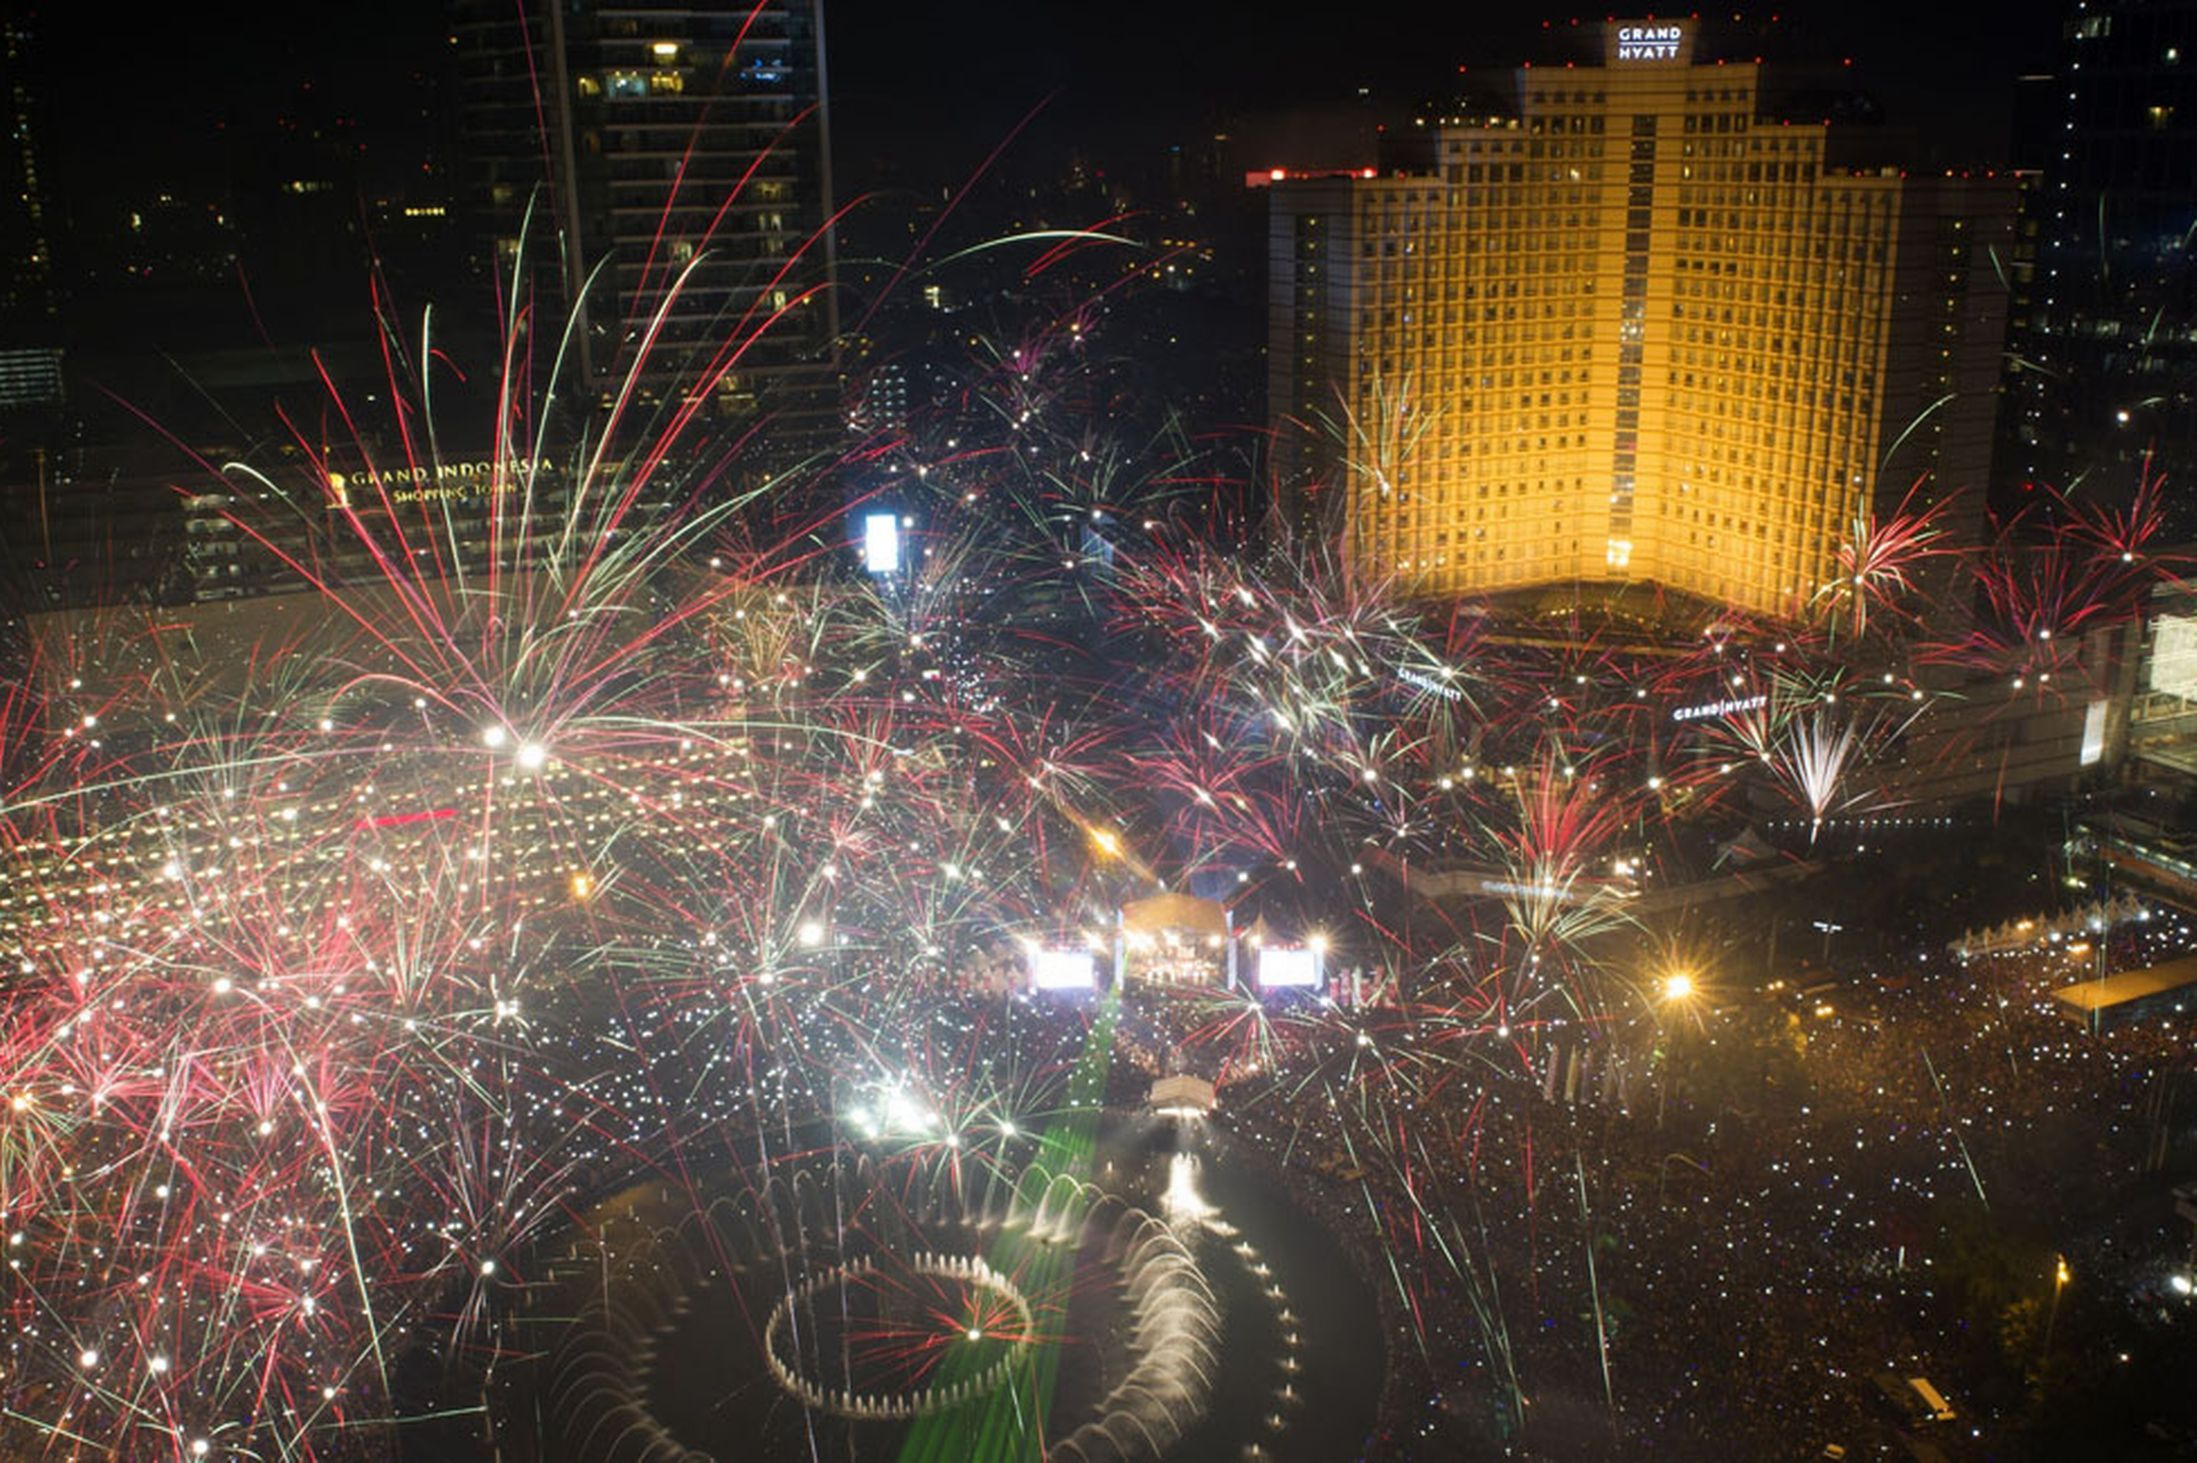 New Year's Eve 2013 live: The best pictures from around the world as we welcome in 2014